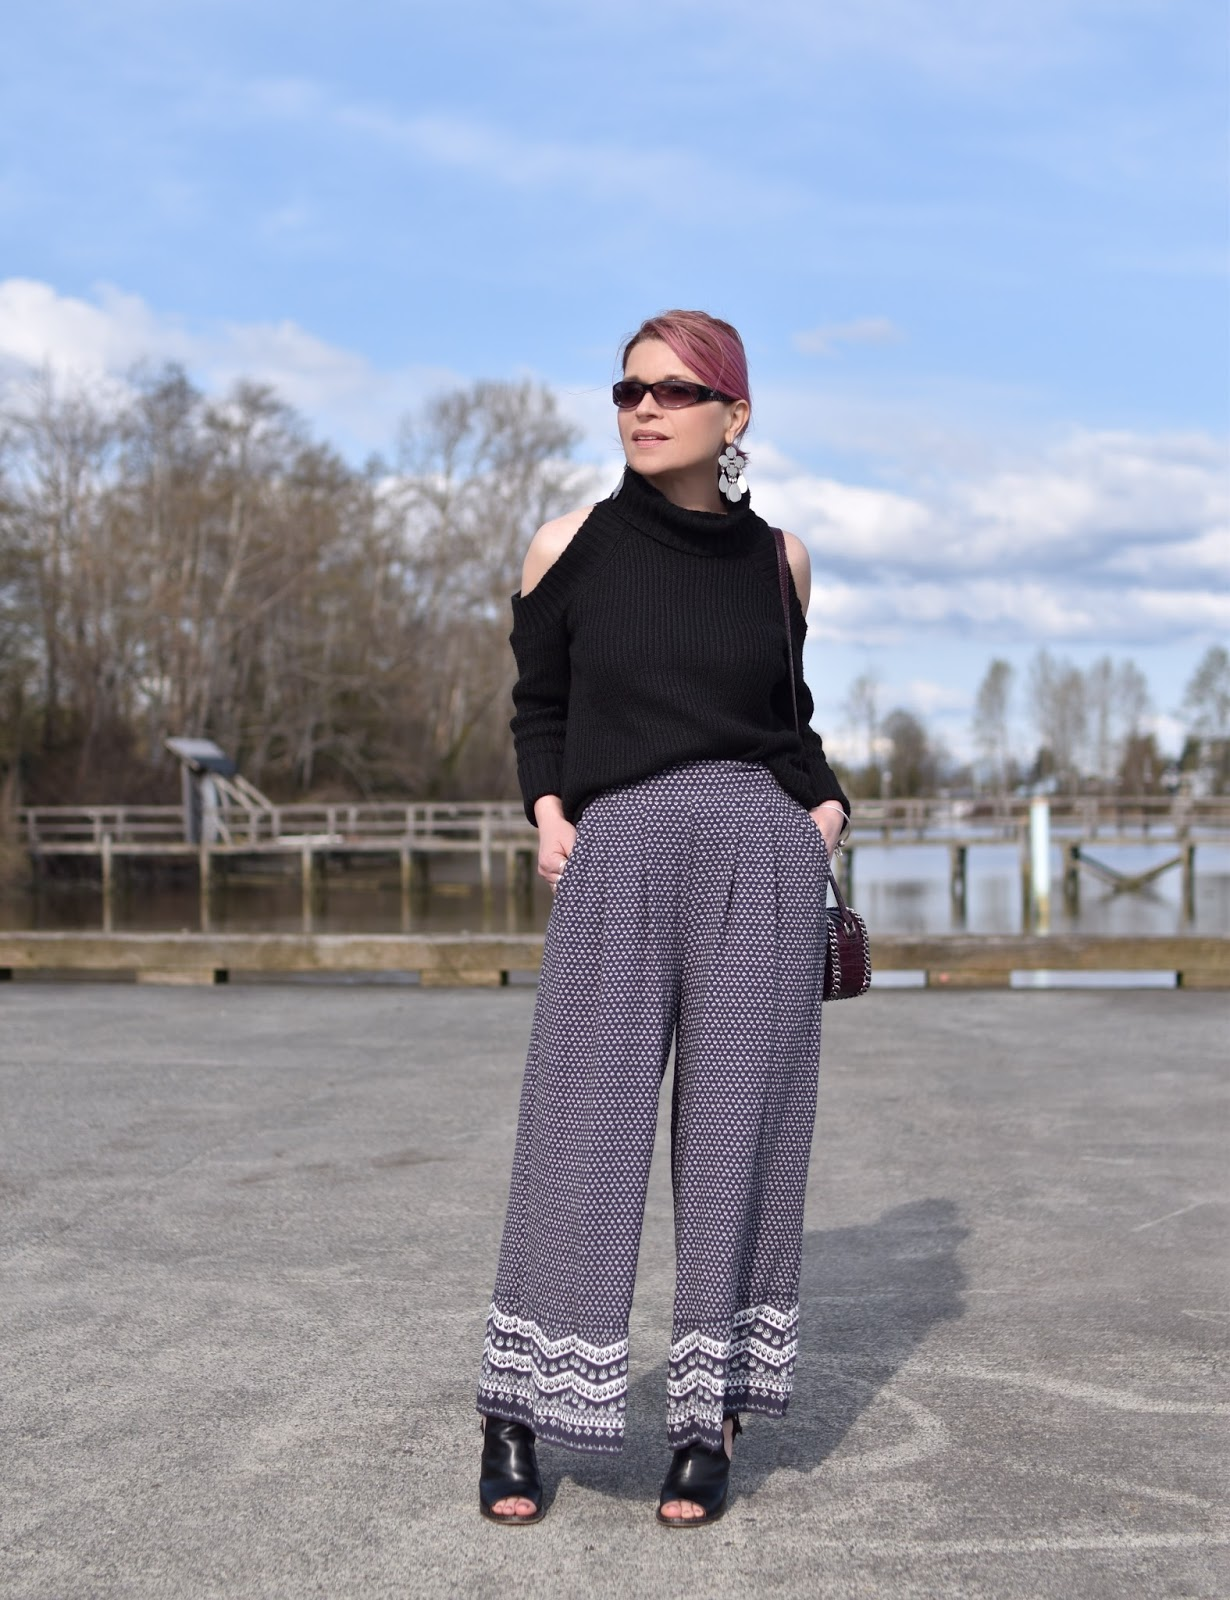 Monika Faulkner outfit inspiration - styling a cold-shoulder sweater with cropped palazzos and cut-out booties